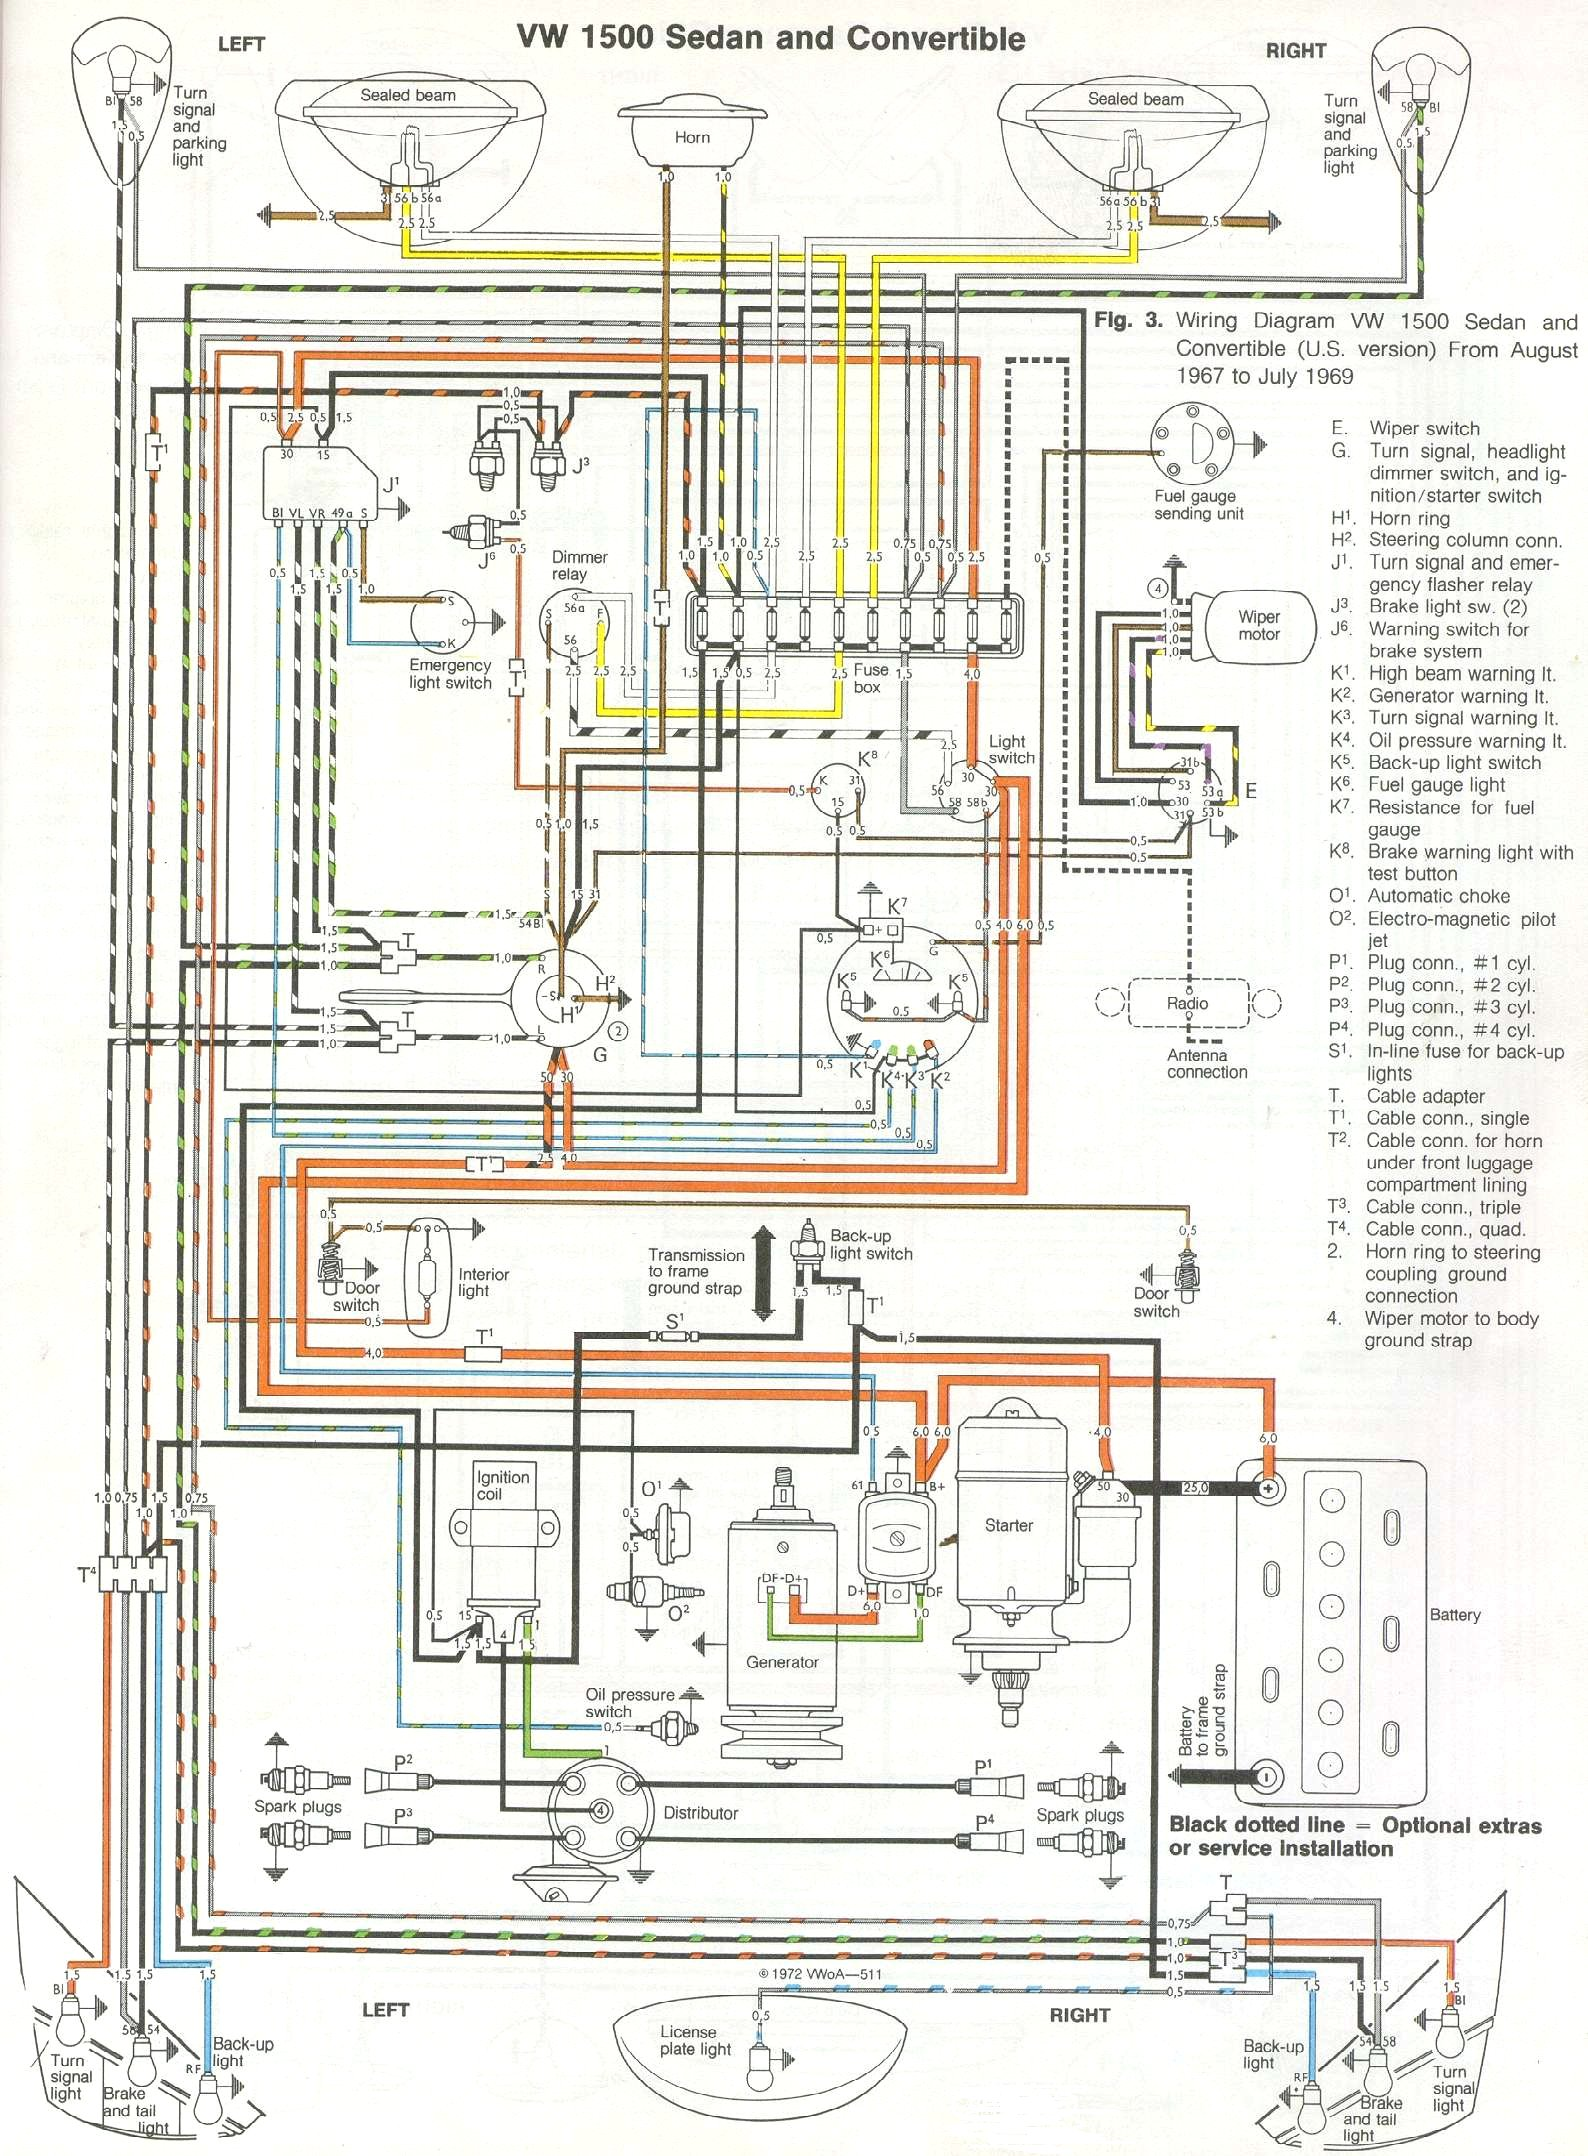 1967 vw wiring diagram radio 3 15 stromoeko de \u2022